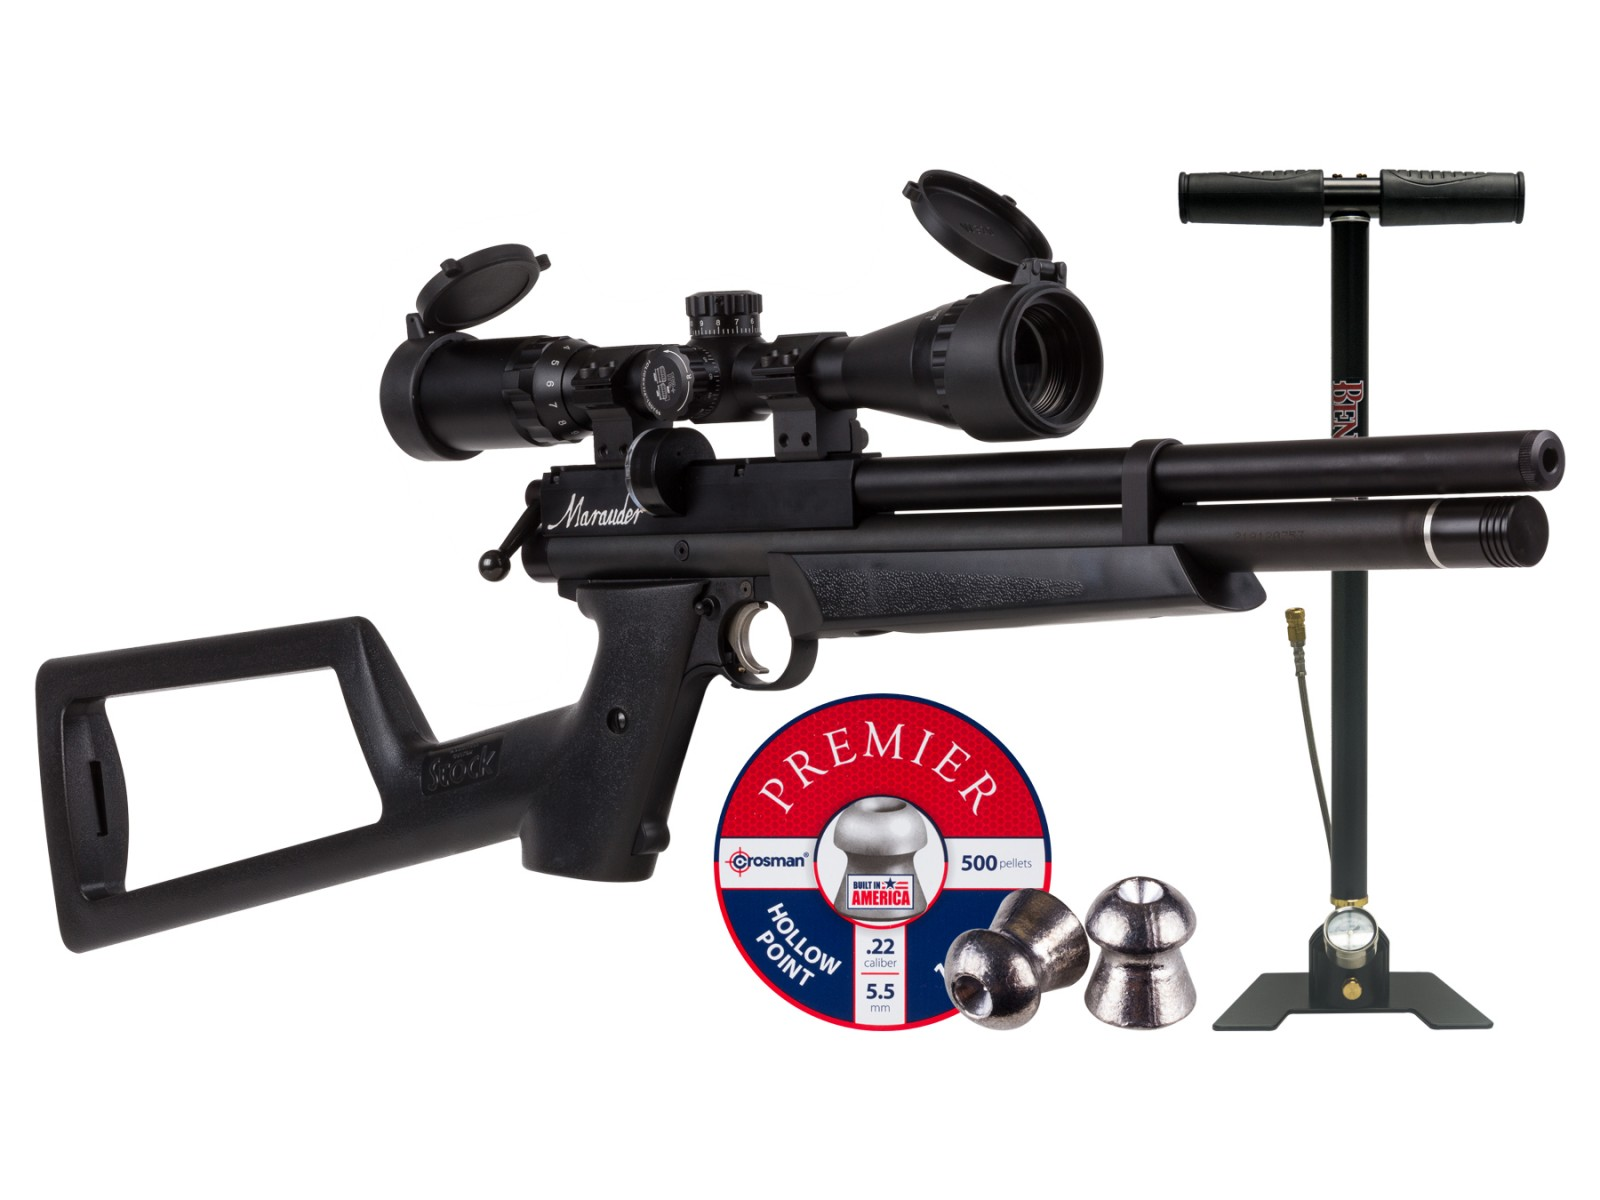 Cheap Benjamin Marauder PCP Air Pistol Kit 0.22